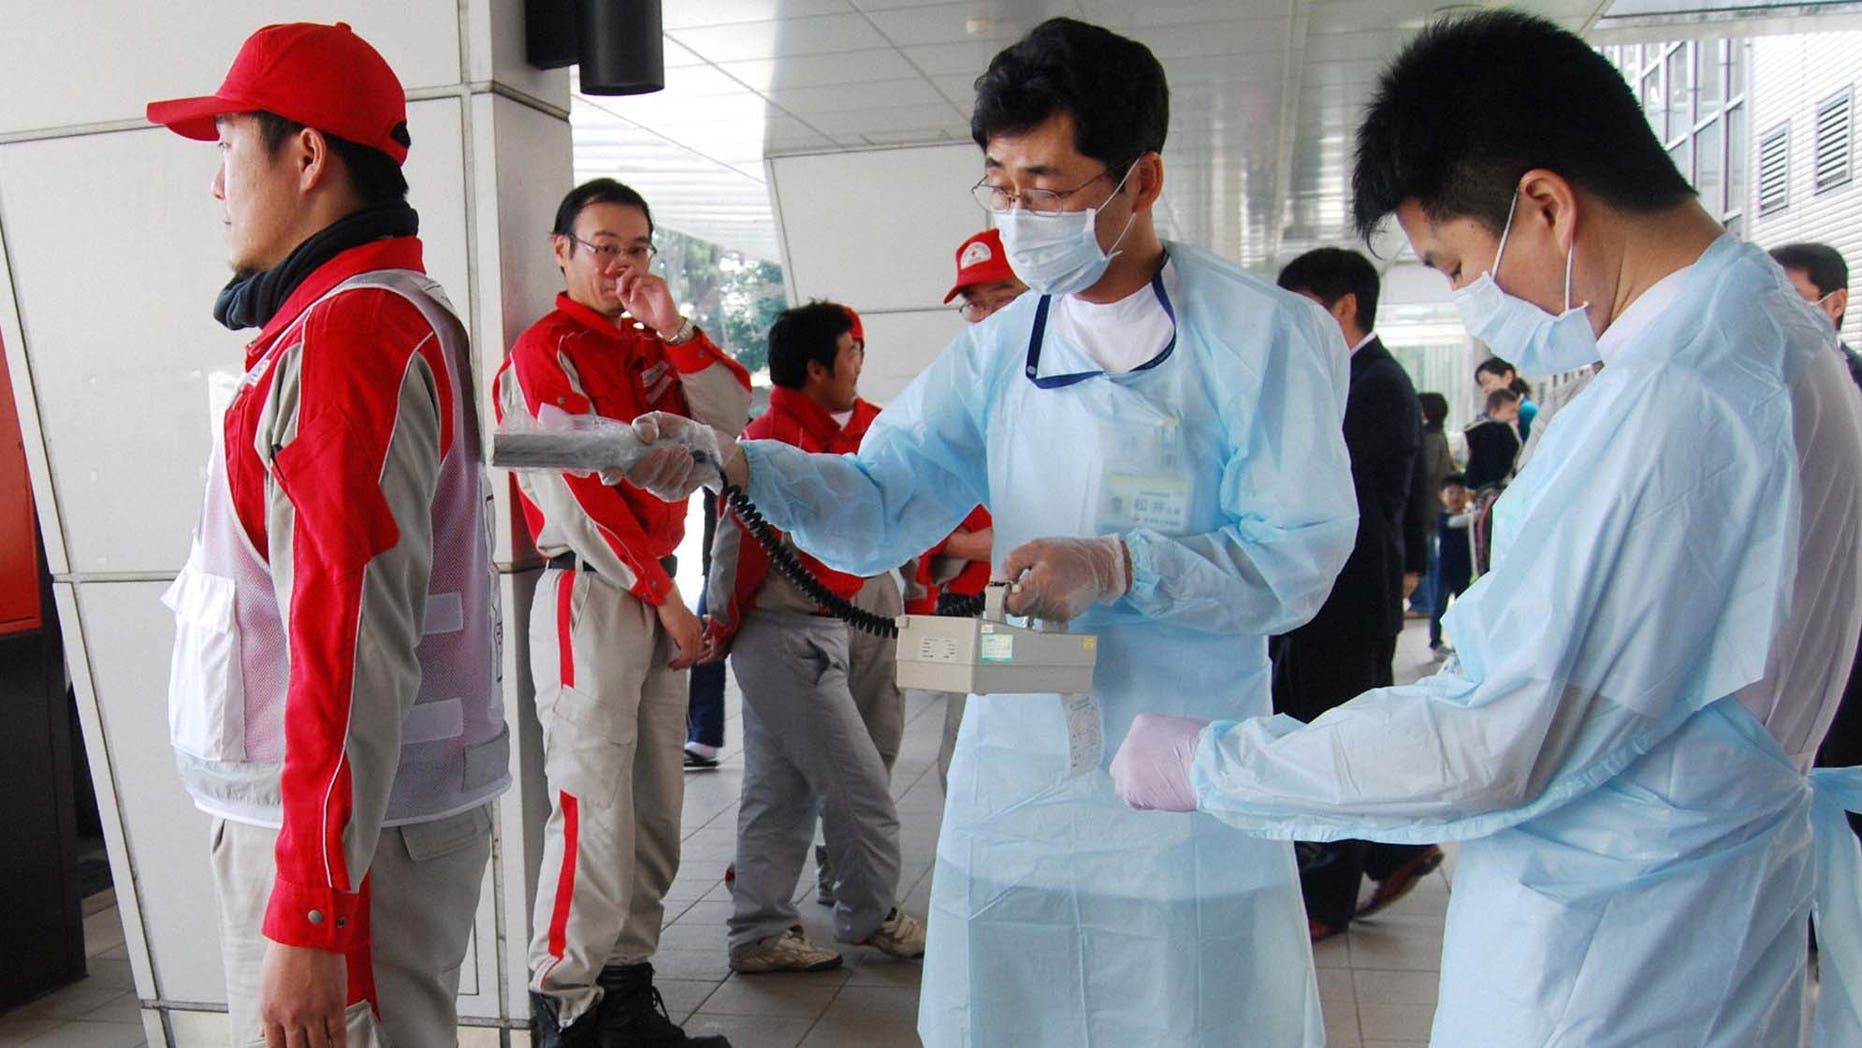 March 14: A Red Cross rescue worker, in red, is scanned for signs of radiation upon returning from Fukushima to his hospital in Nagahama, Shiga Prefecture.